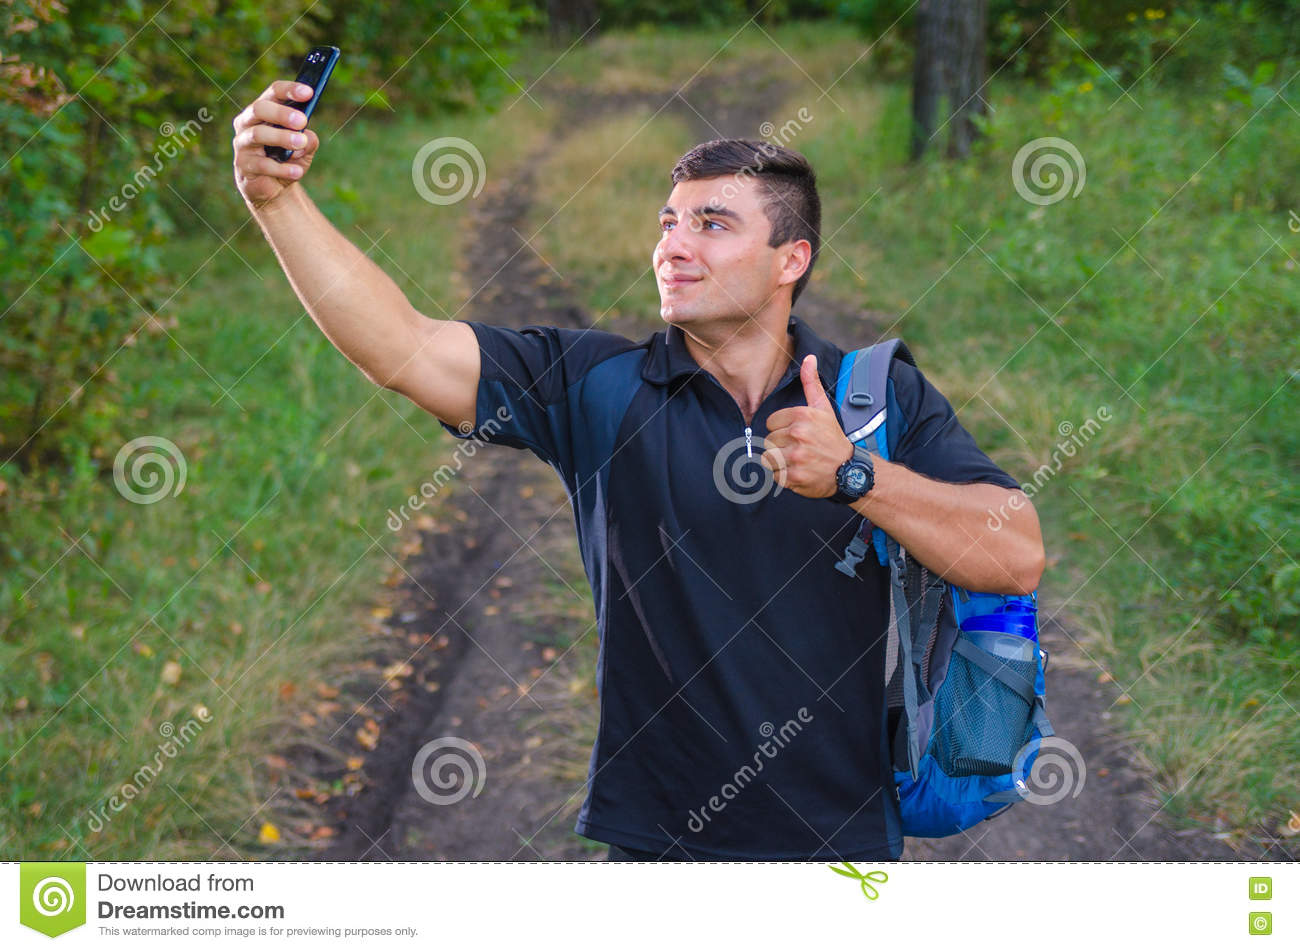 Handsome Young Man Taking A Selfie With A Phone, Smiling